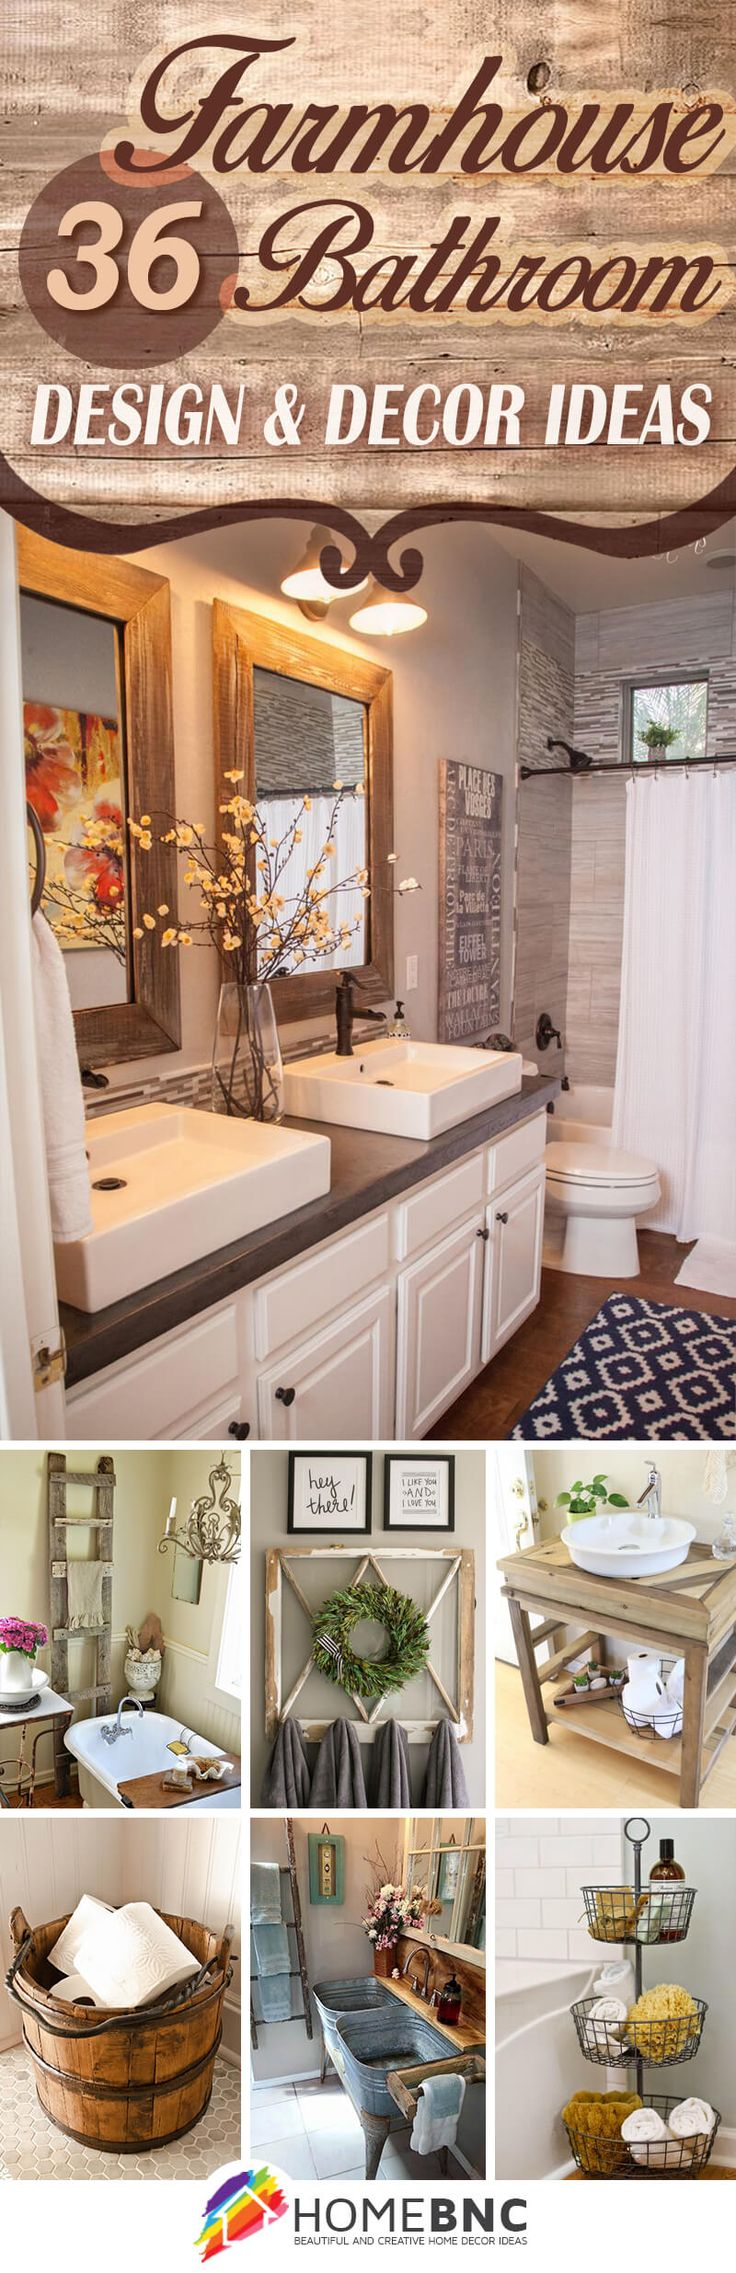 best 25 elegant bathroom decor ideas on pinterest small spa 36 beautiful farmhouse bathroom design and decor ideas you will go crazy for